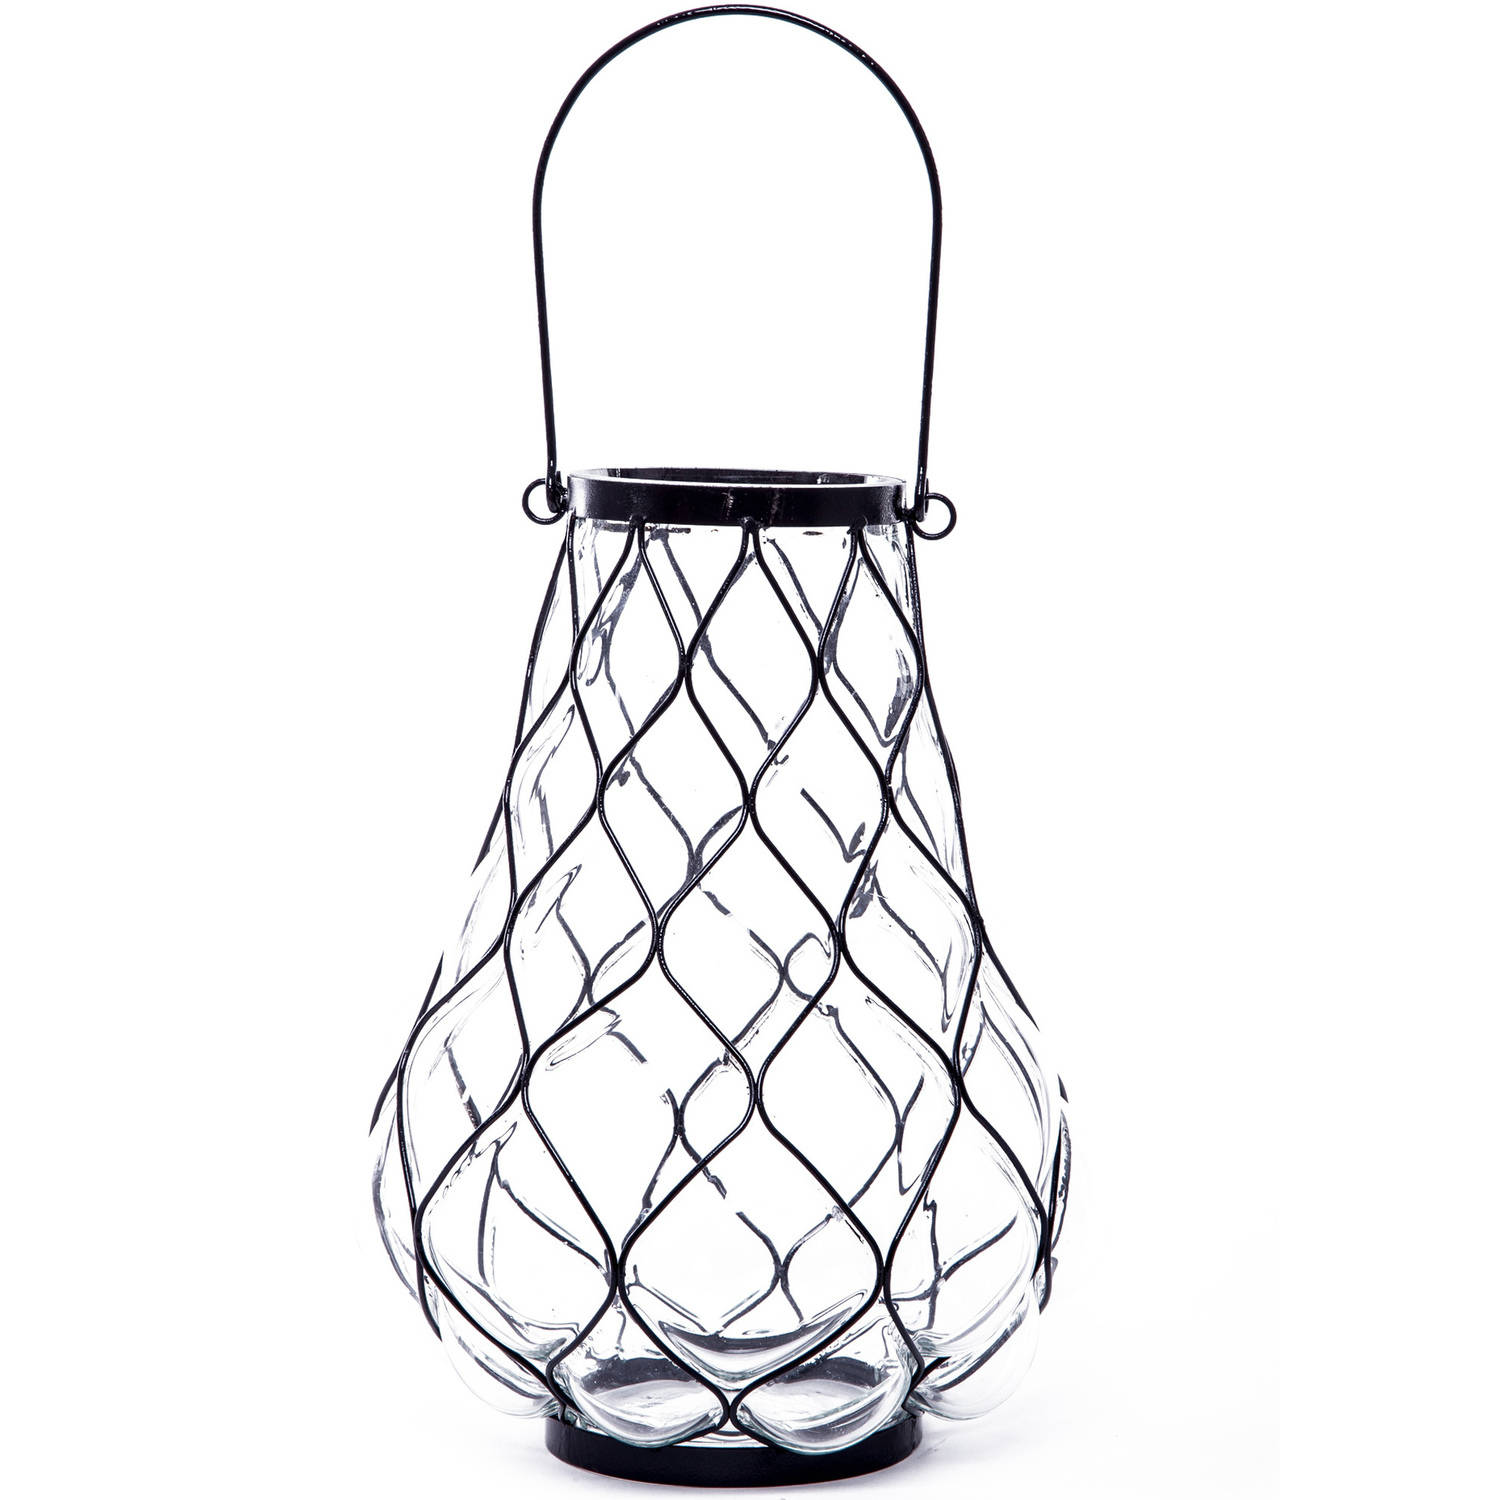 Better Homes and Gardens Pineapple Caged Lantern